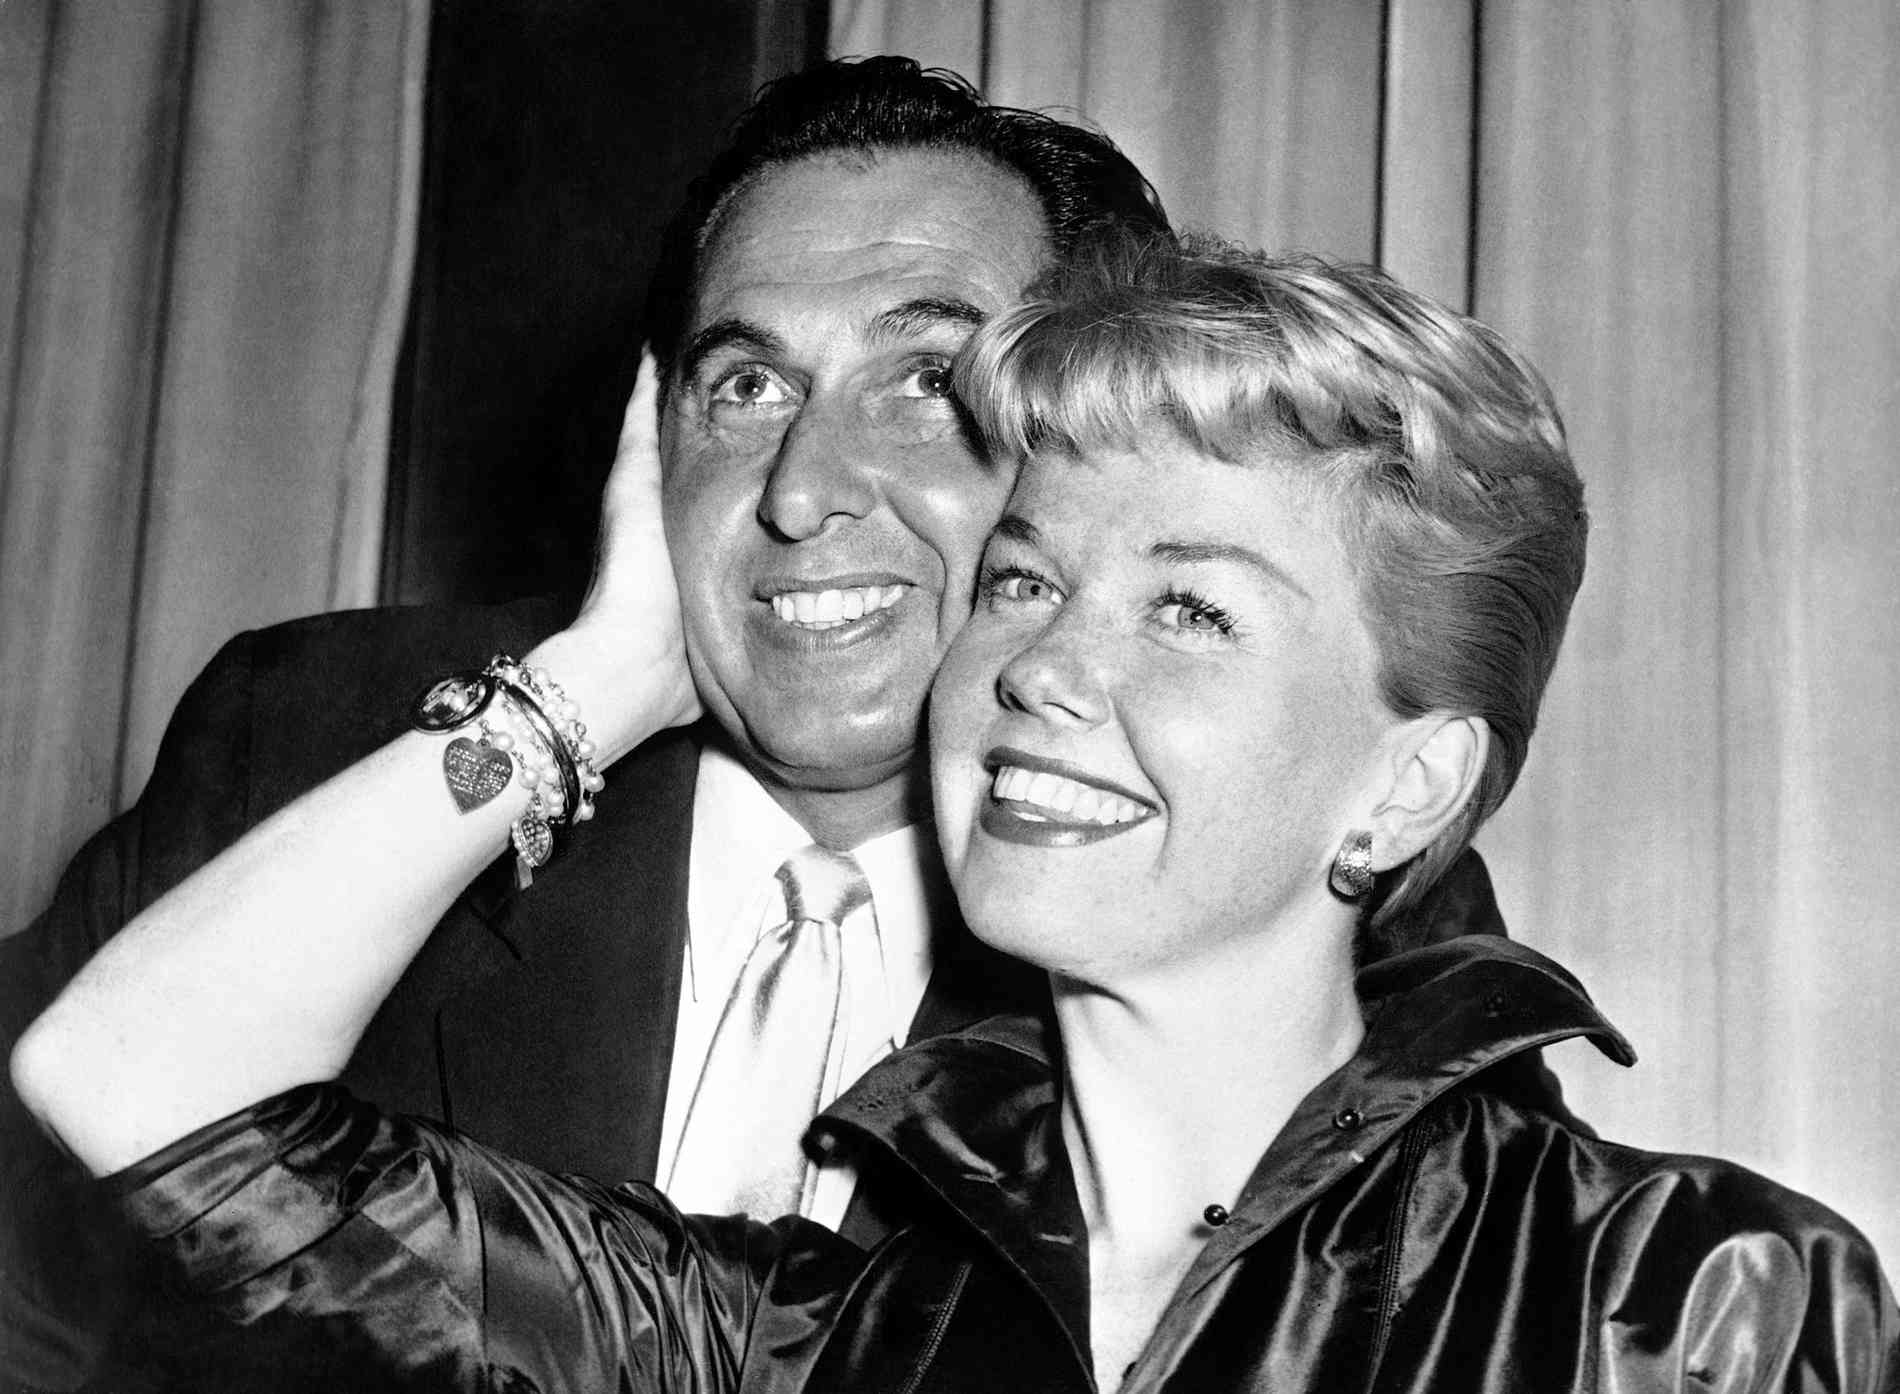 Hollywoodlegende Doris Day ist gestorben